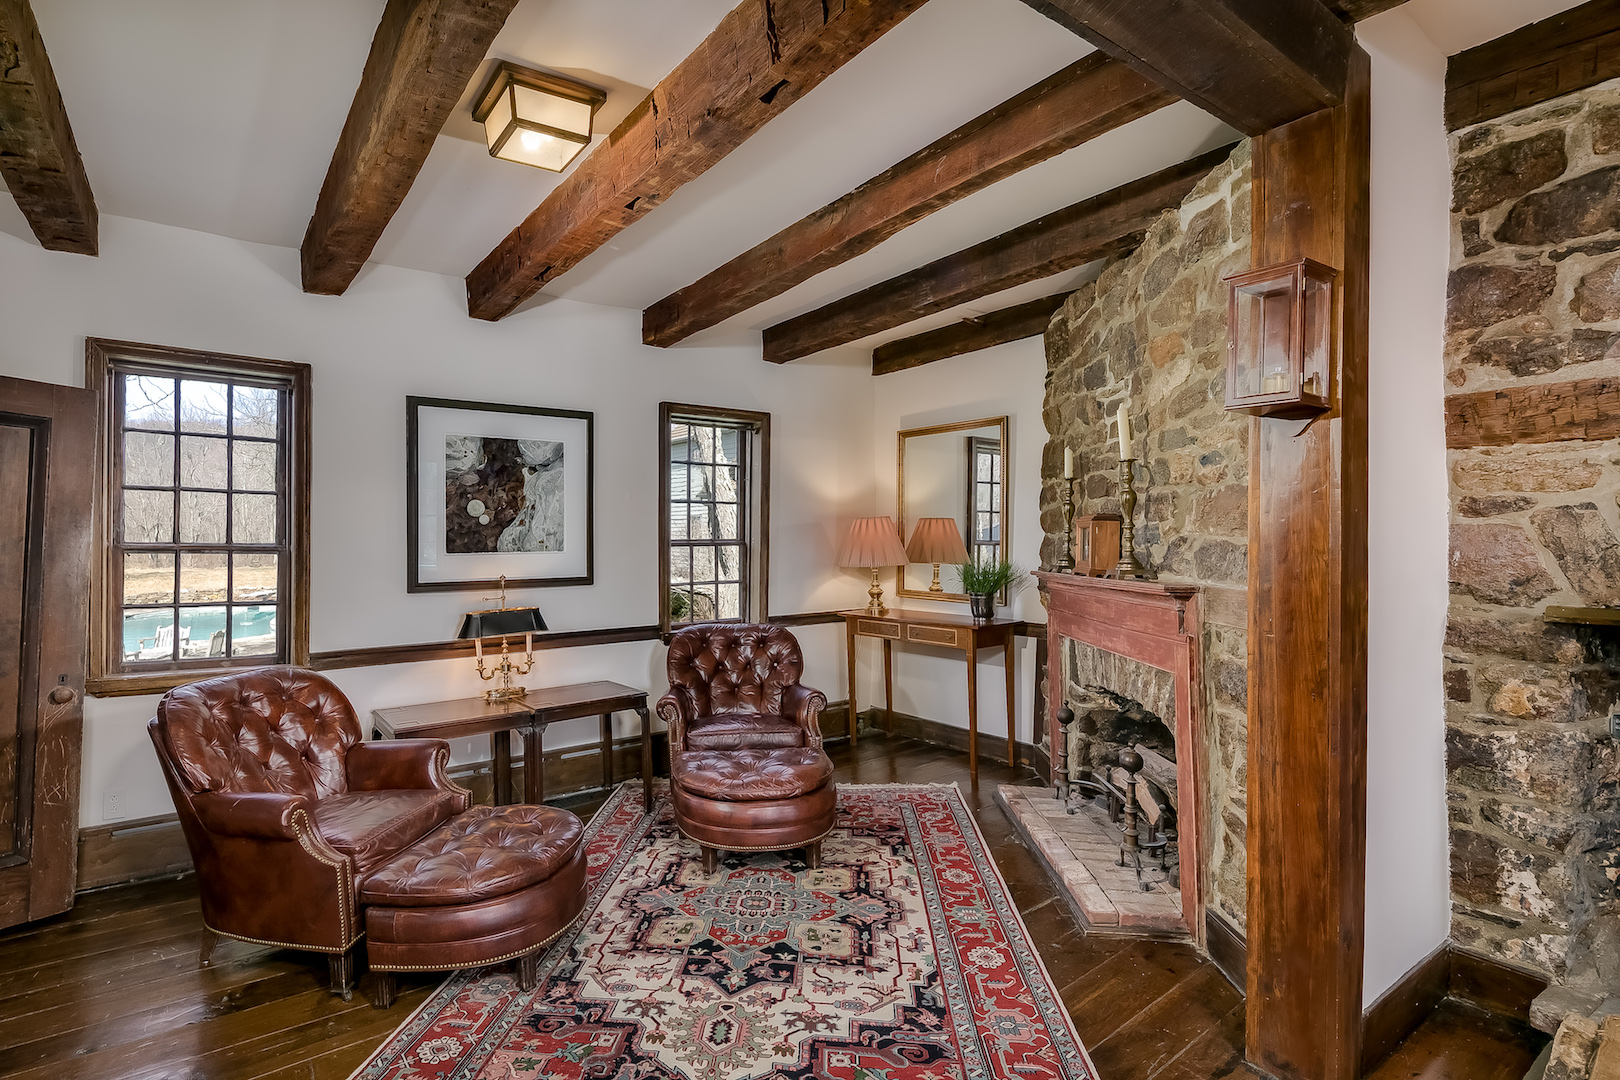 11 422 West Mill Road Washington Township — den from dining room